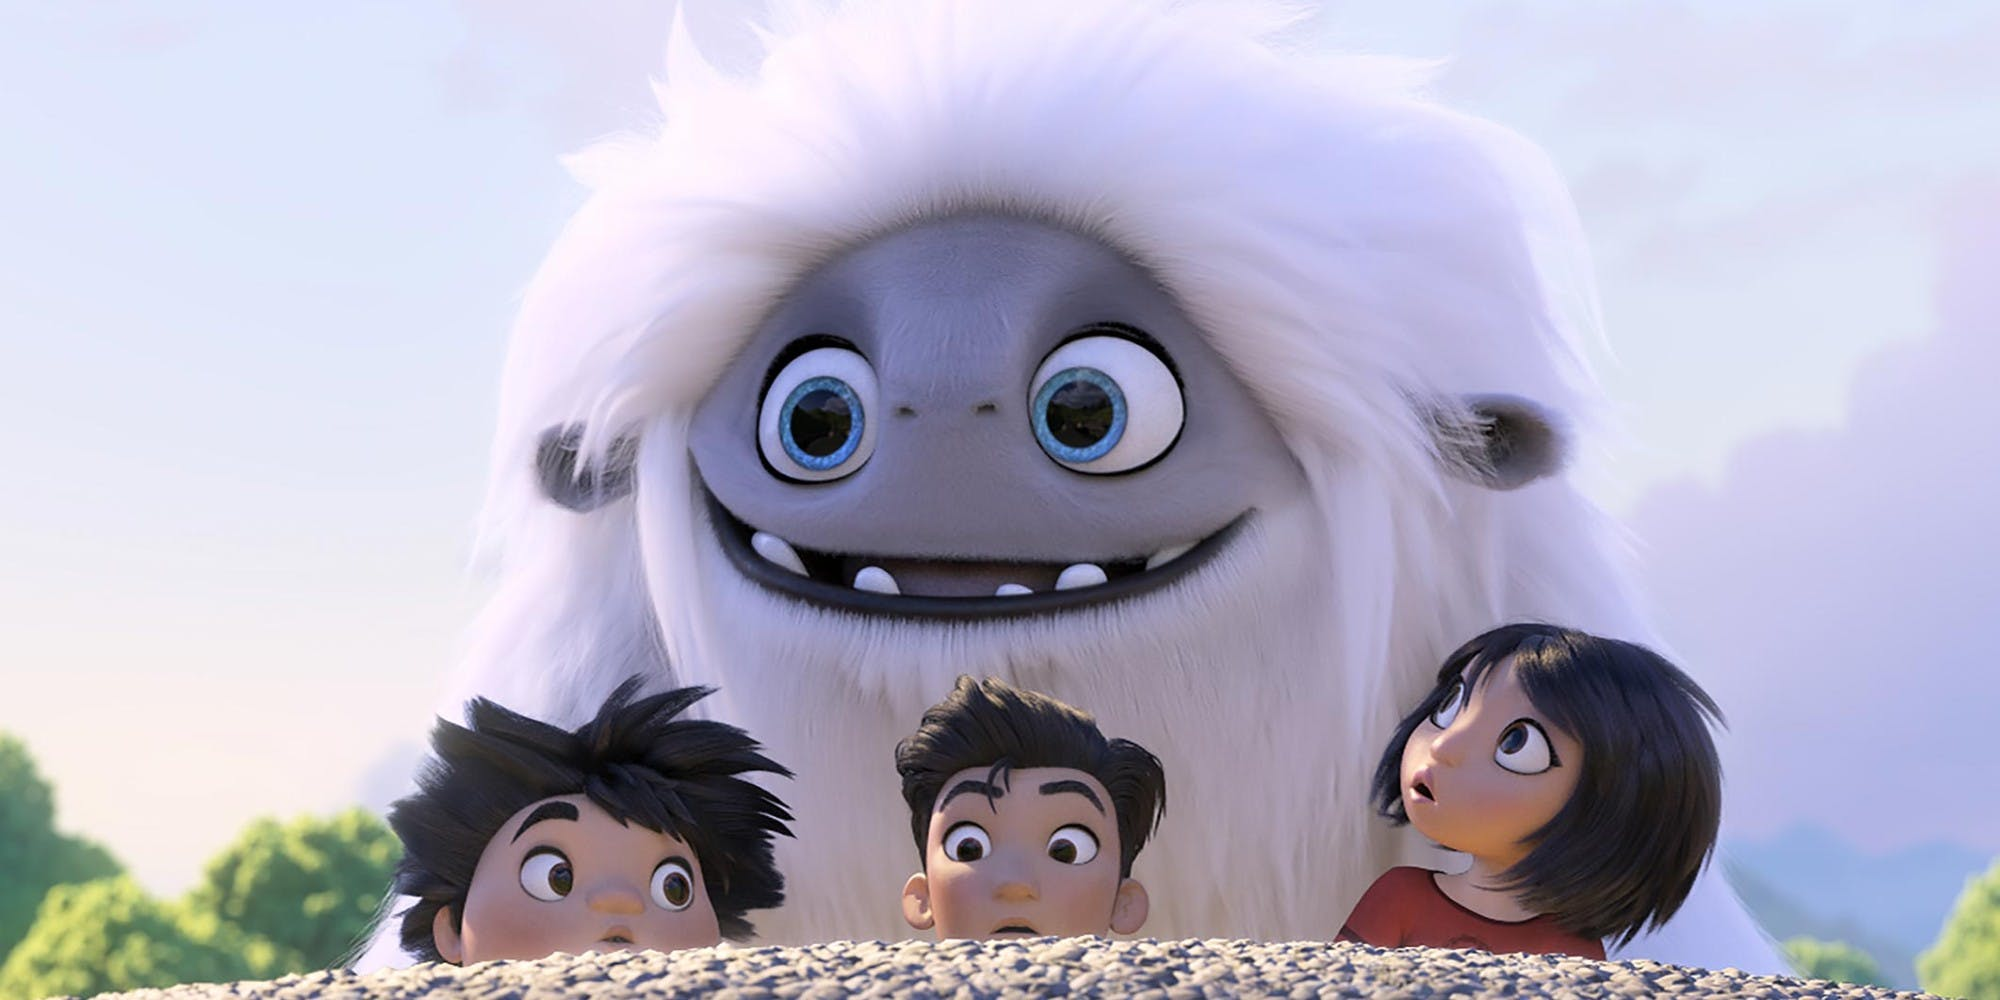 2000x1000 50+ Abominable Movie Wallpaper Download In HD 4k Images 2019